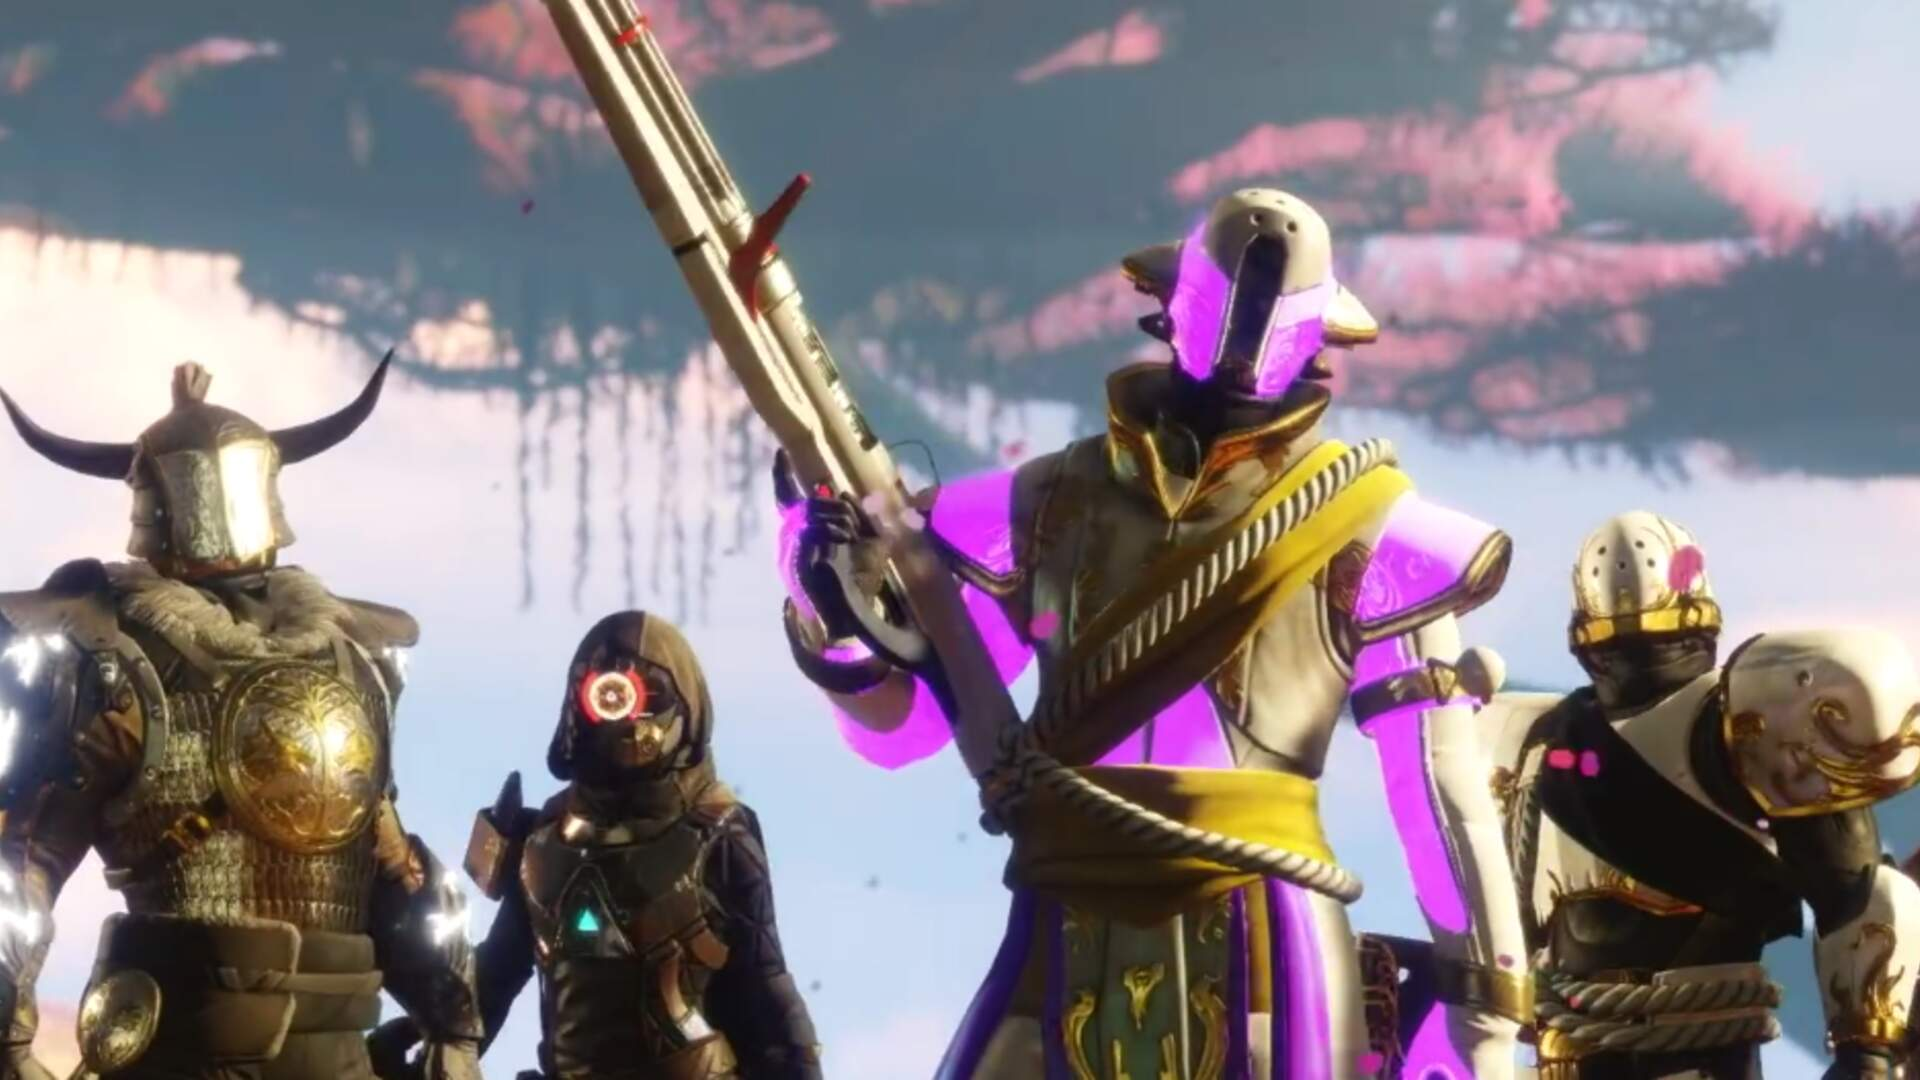 Destiny 2 Patch 1.2.3 Finally Brings Bounties and 6v6 PvP Back to the Series